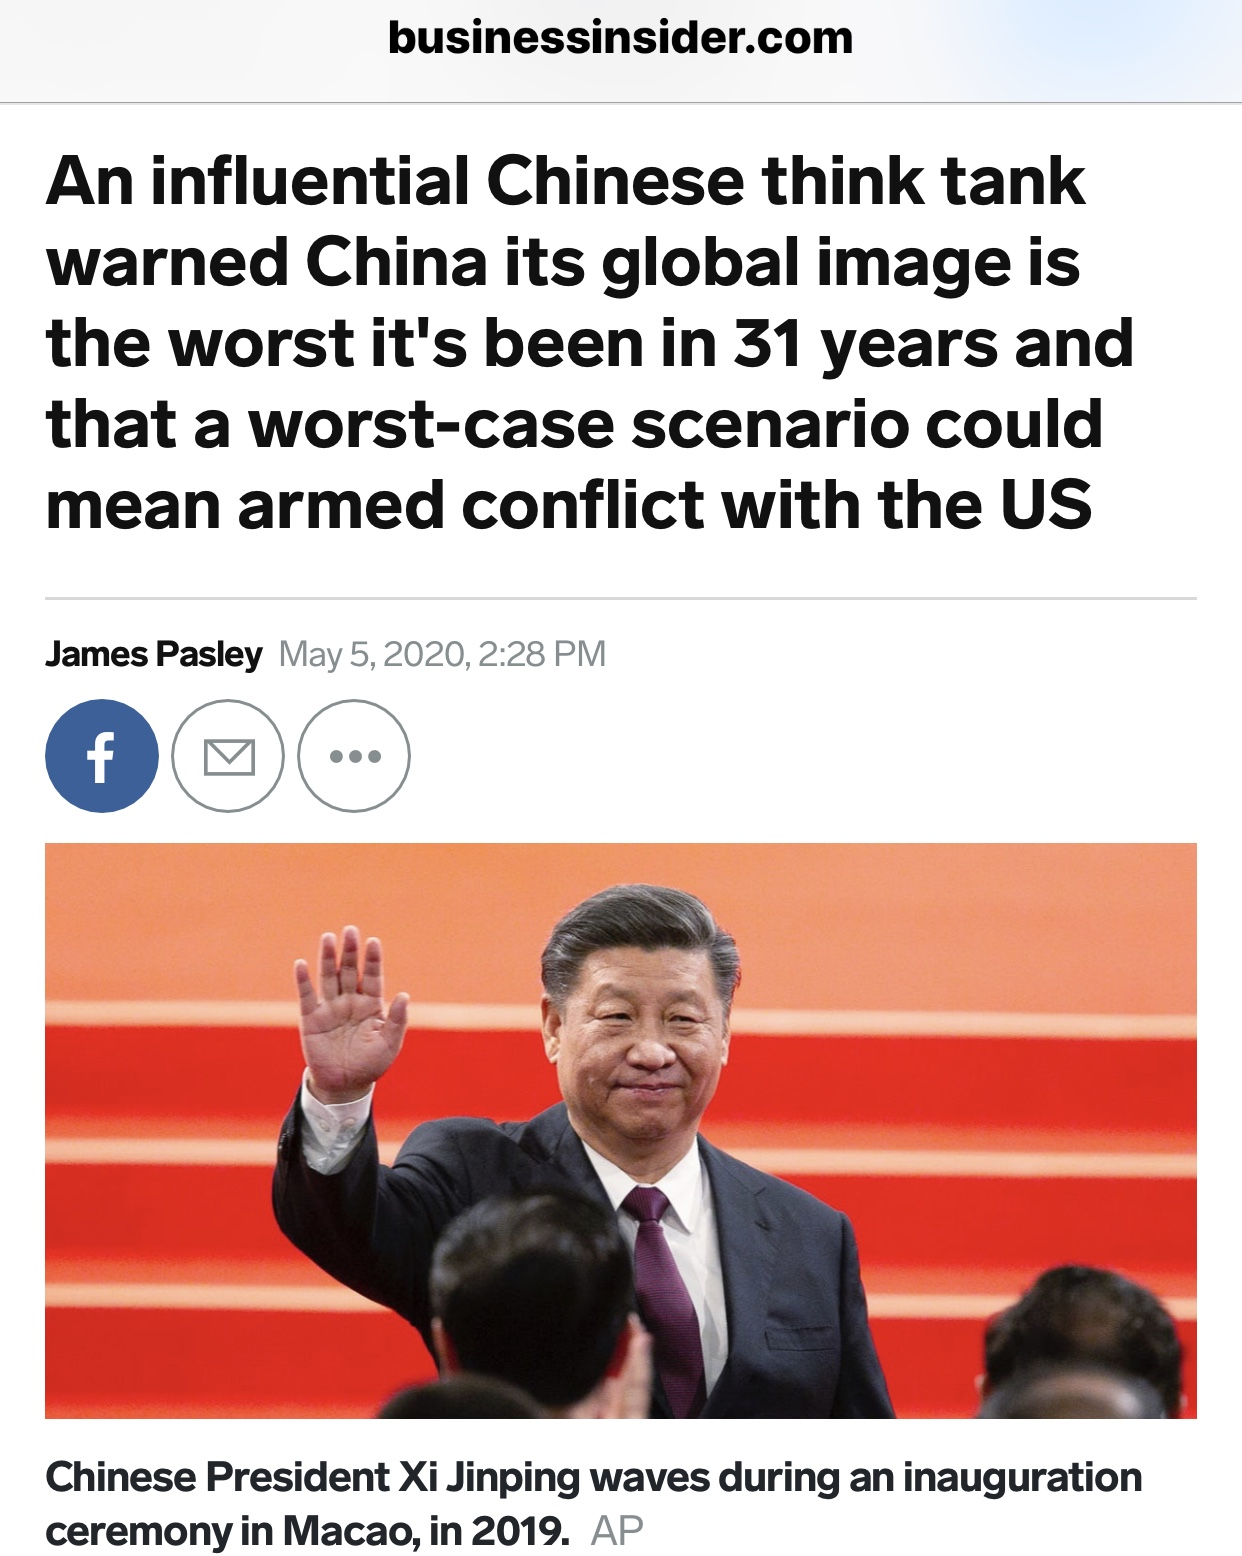 Chinese Think Tank Warned China's Global Image The Worst in 31 Years and Could Mean Armed Conflict With US